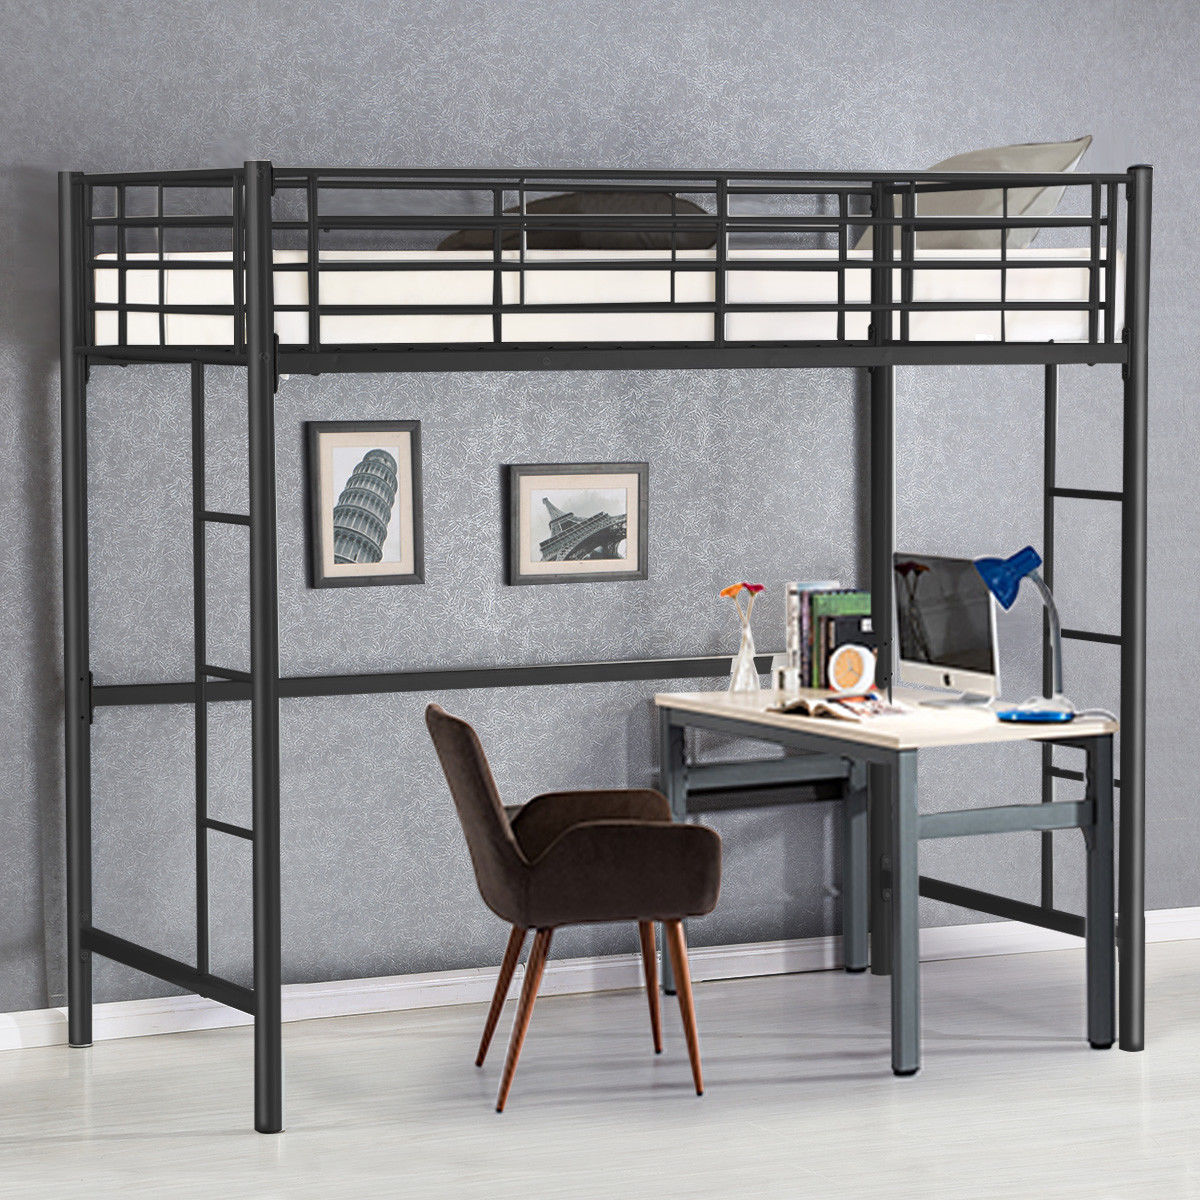 Gymax Twin Loft Bed Metal Bunk Ladder Beds Boys Girls Teens Kids Bedroom Dorm Black